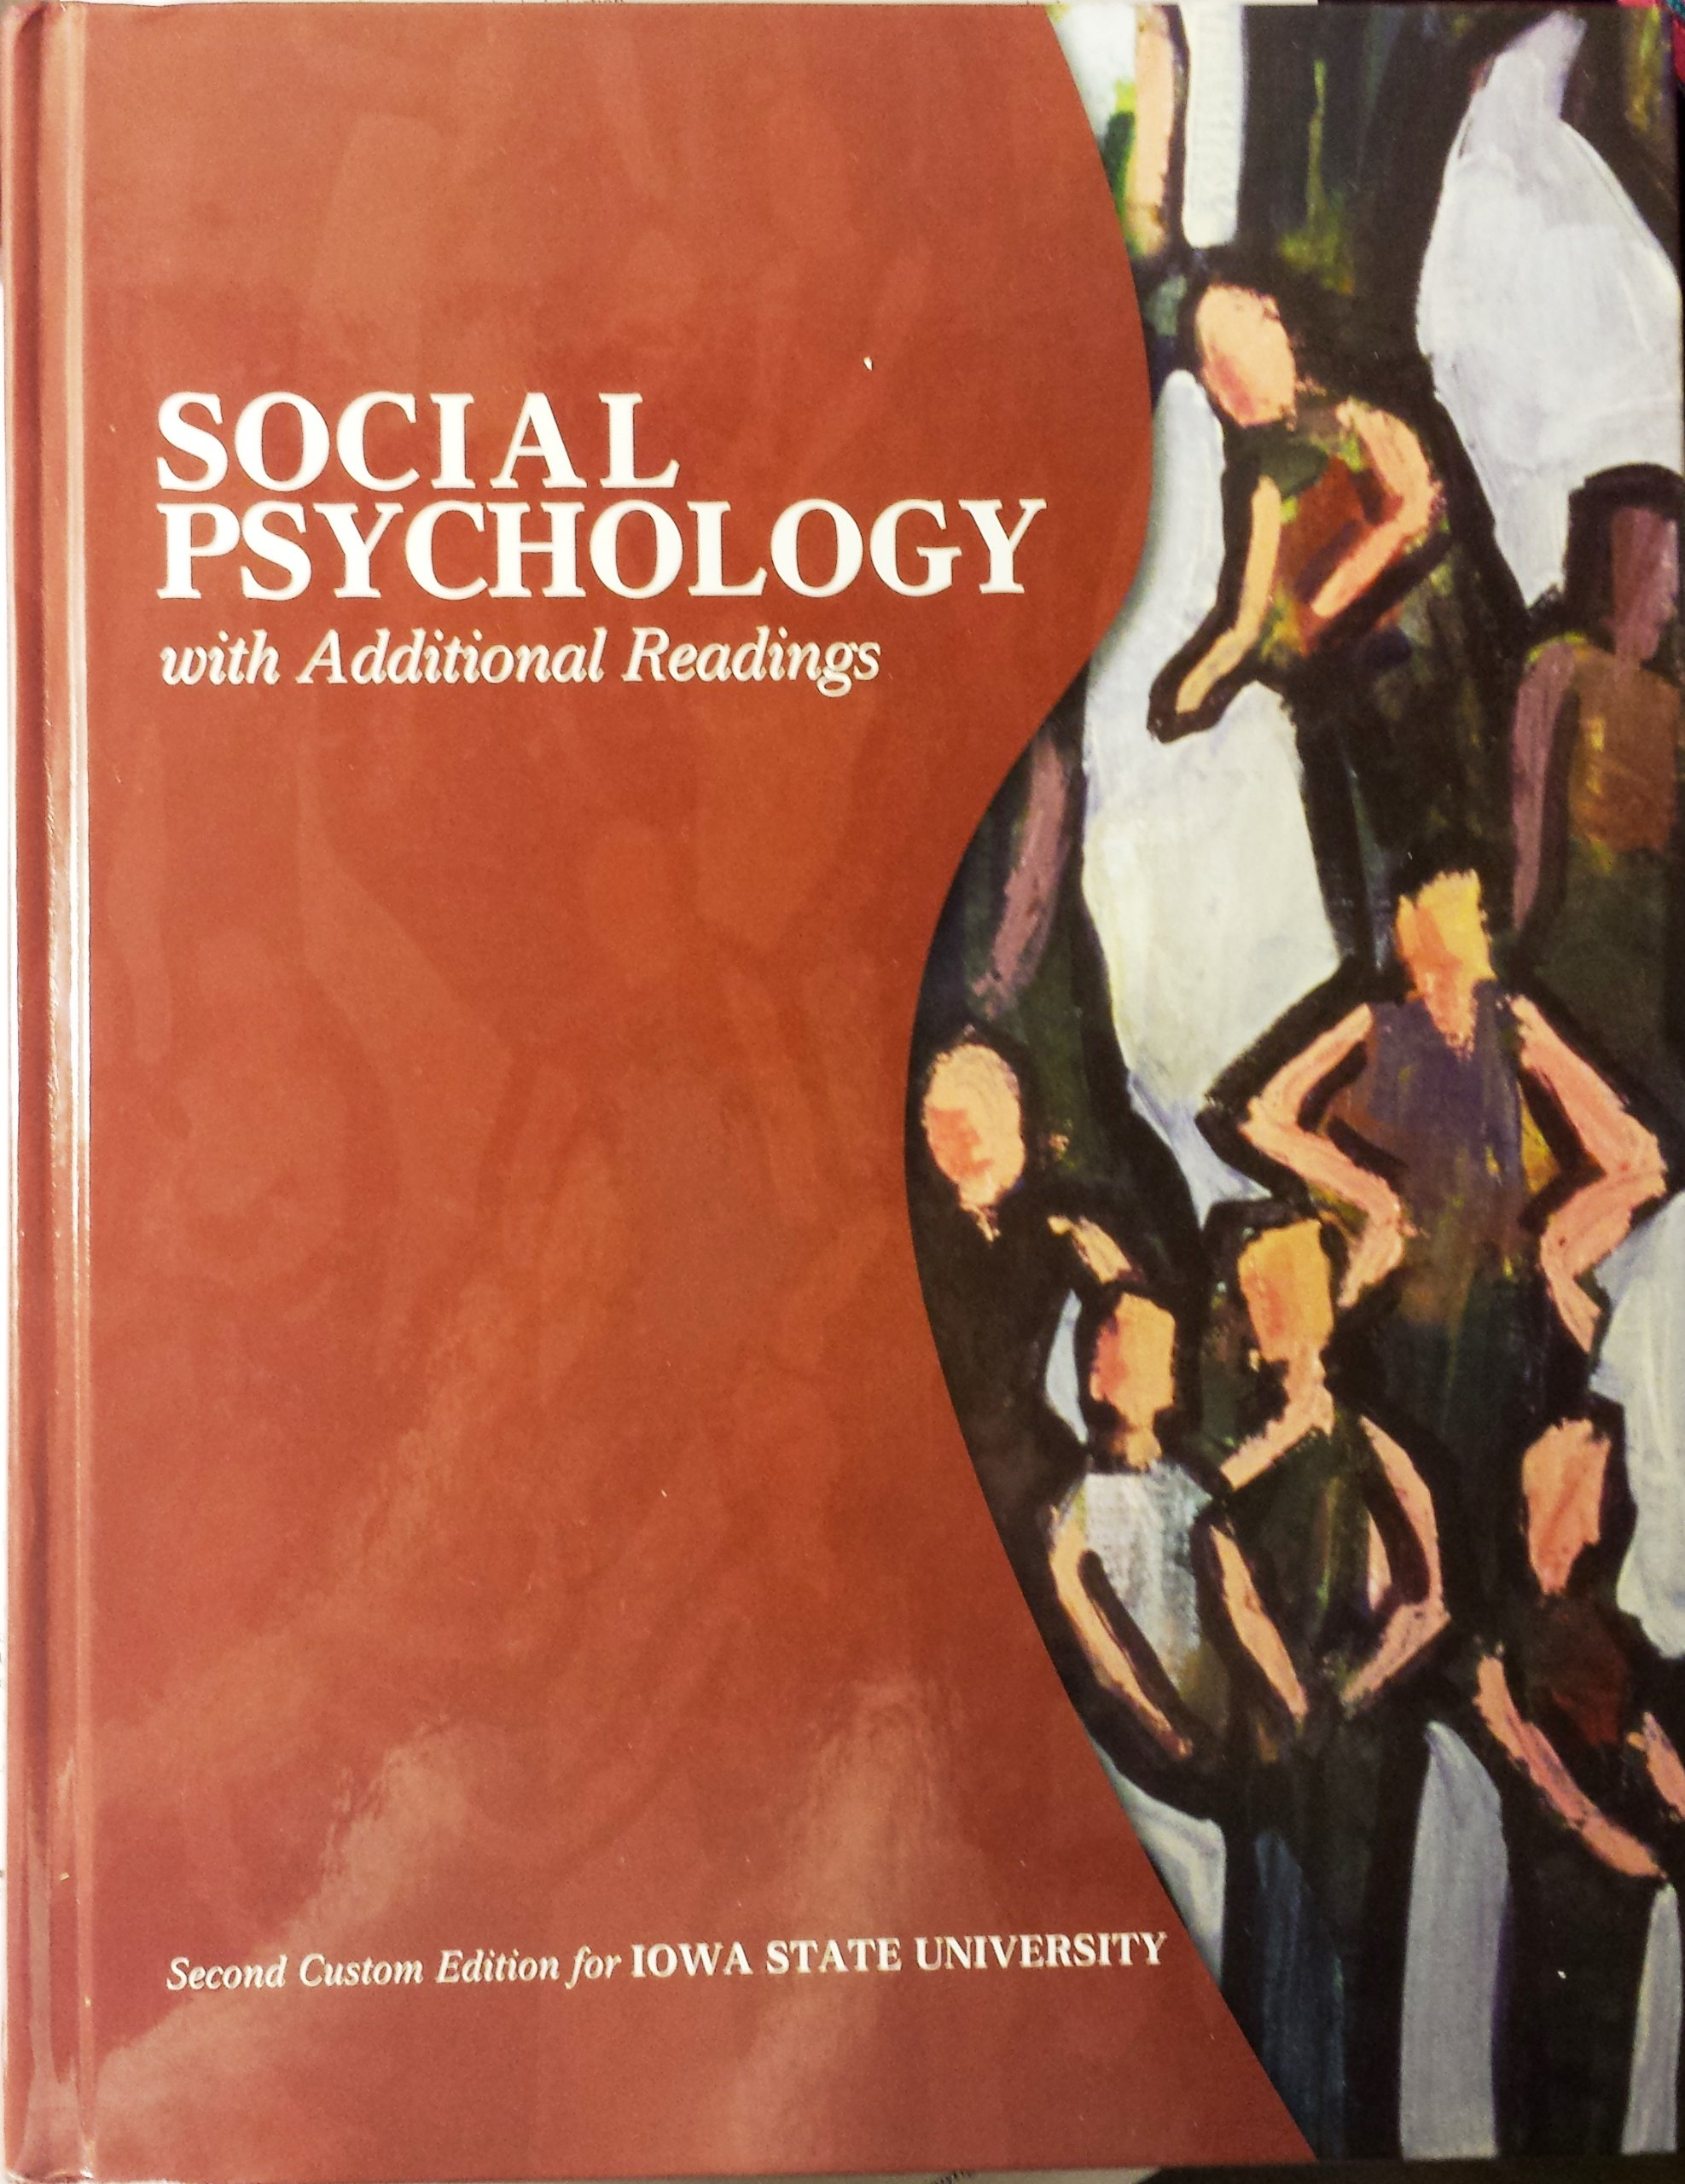 Social psychology with additional readings 2nd custom edition for social psychology with additional readings 2nd custom edition for iowa state university tim wilson robin akert elliot aronson 9781269344012 fandeluxe Choice Image